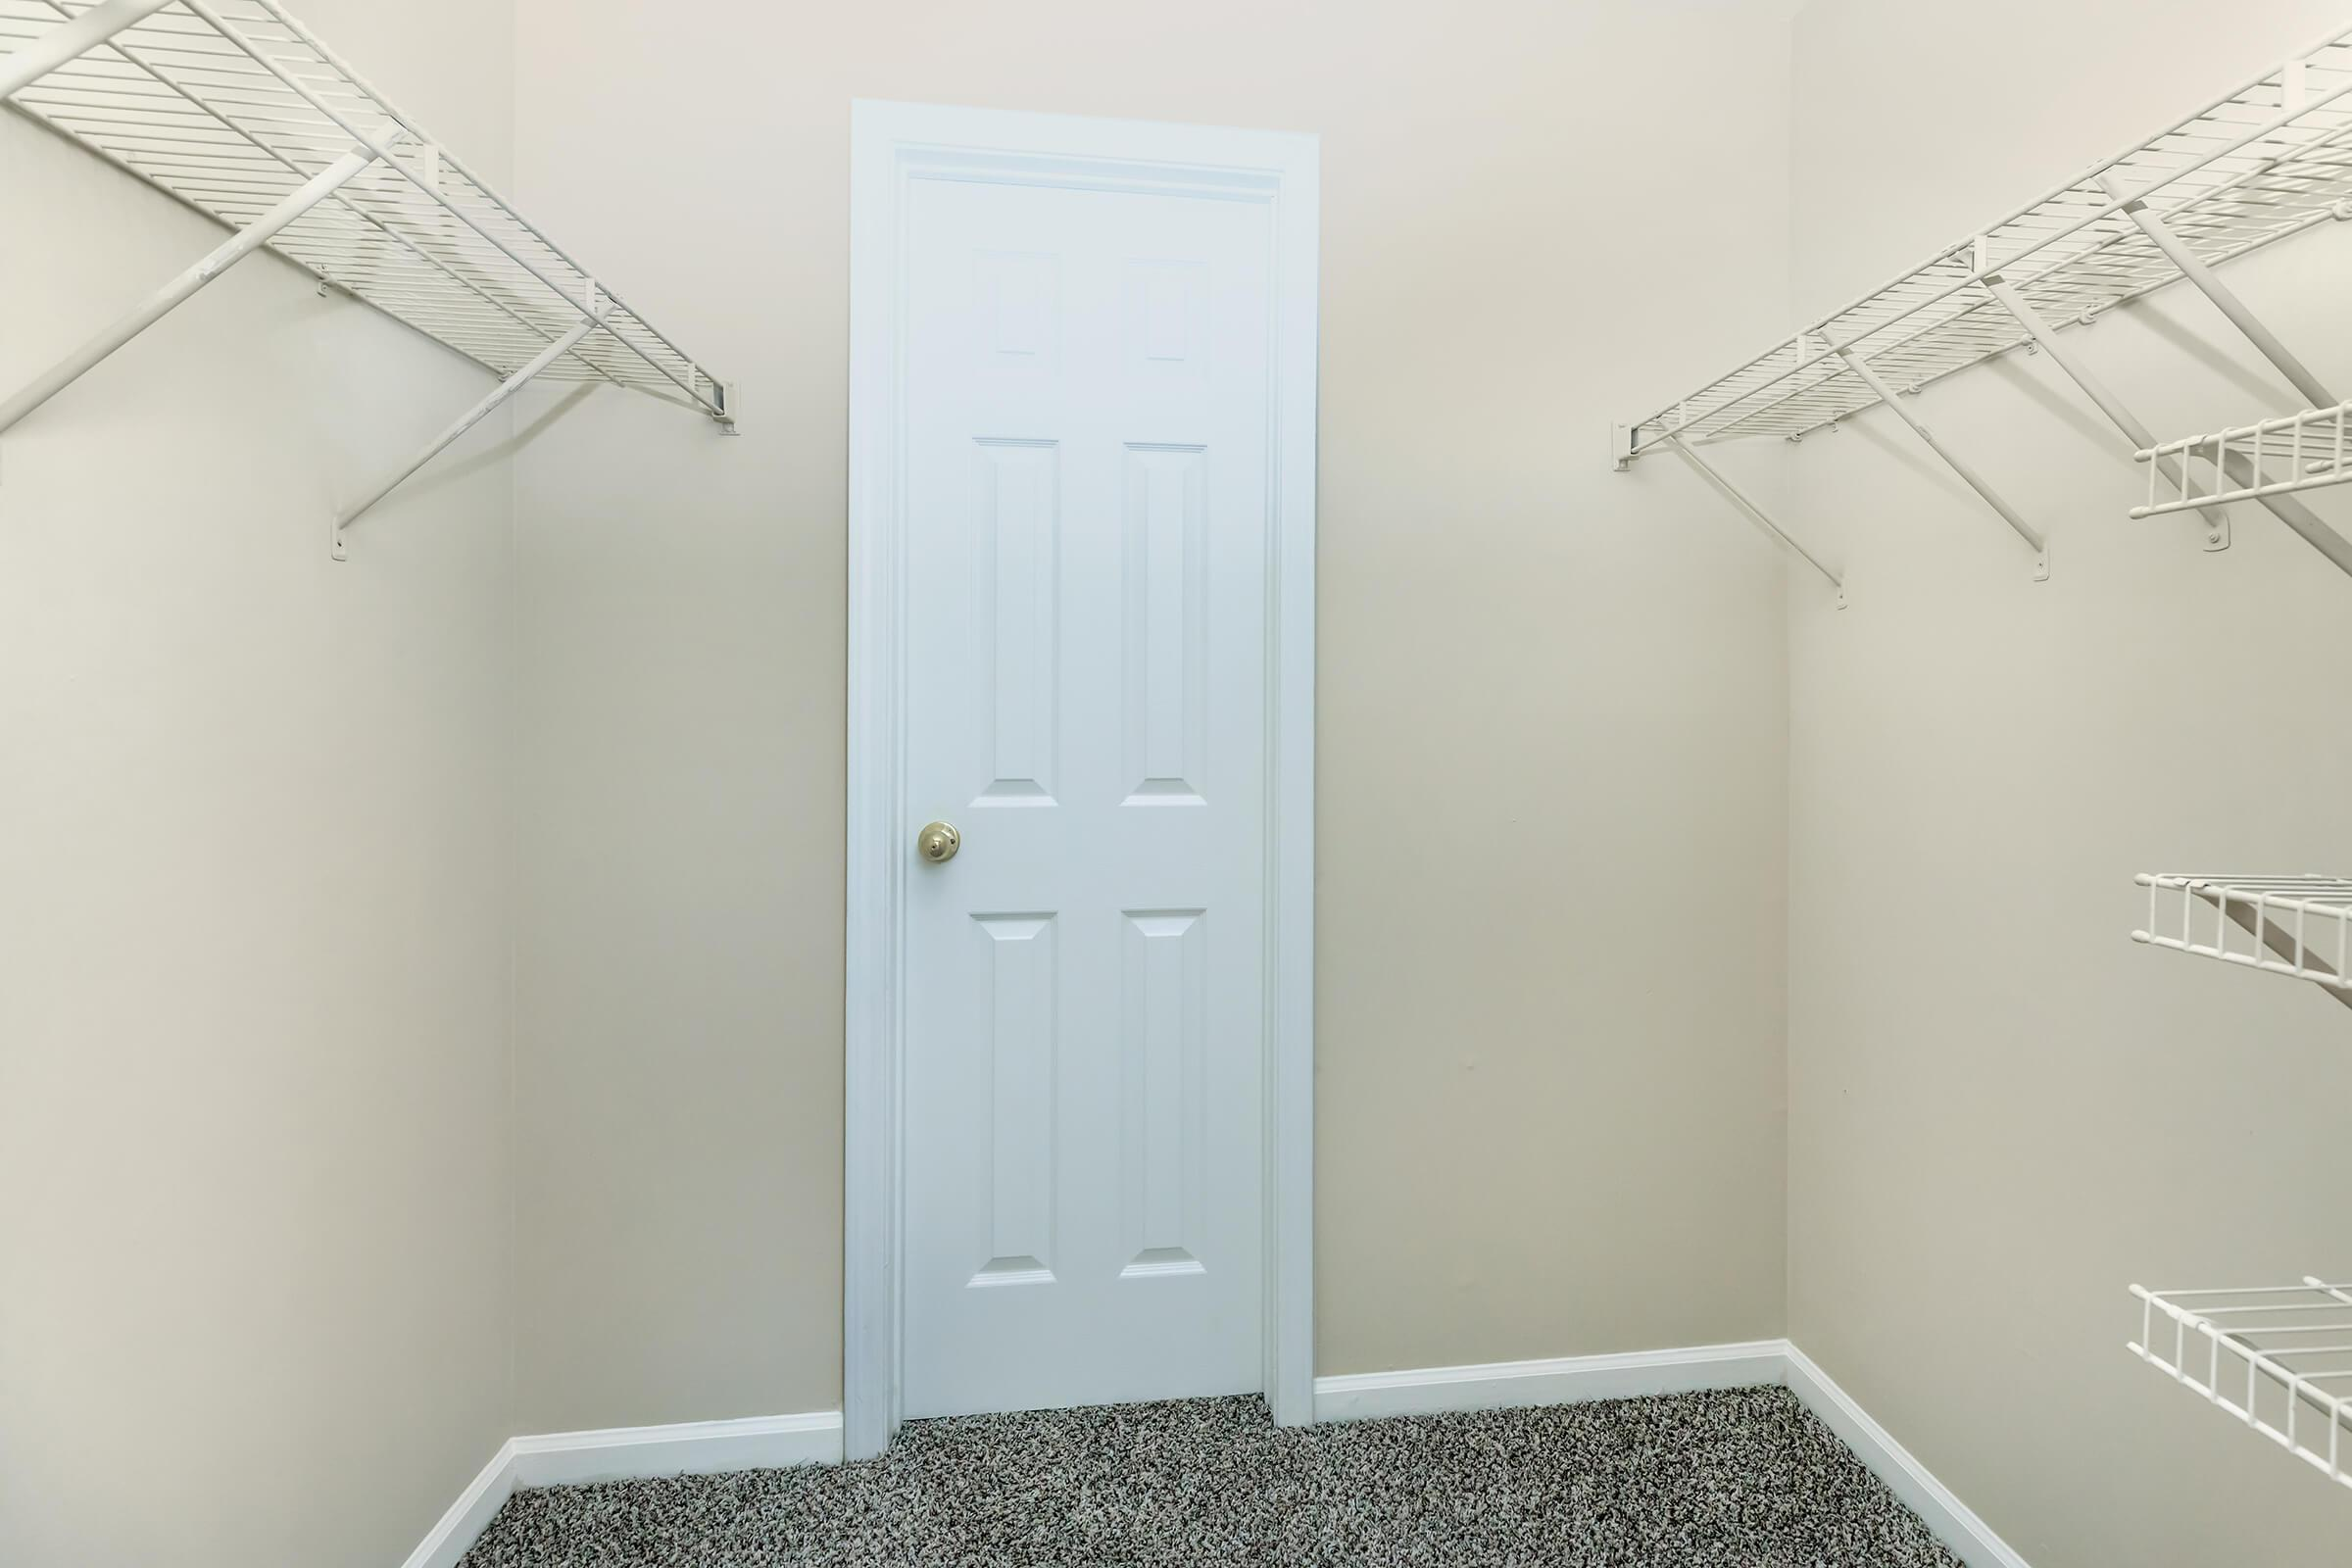 a close up of a small room